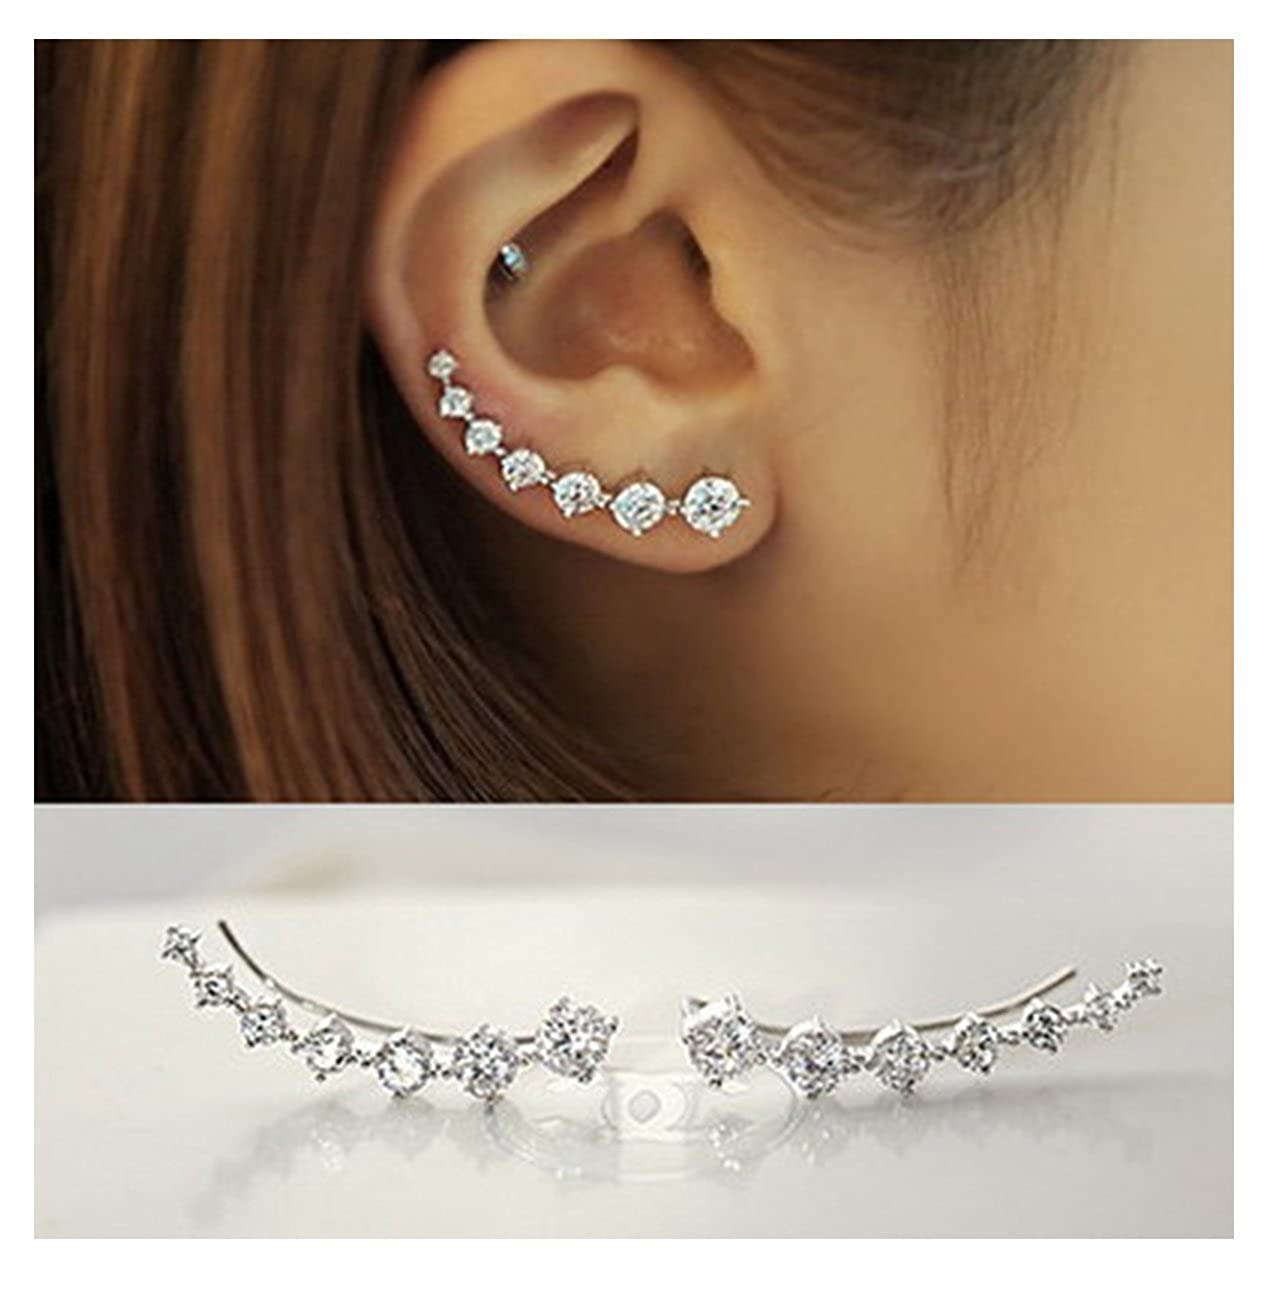 Elensan 7 Crystals Ear Cuffs Hoop Climber S925 Sterling Silver Earrings Hypoallergenic Earring 5B-665C-XH8F